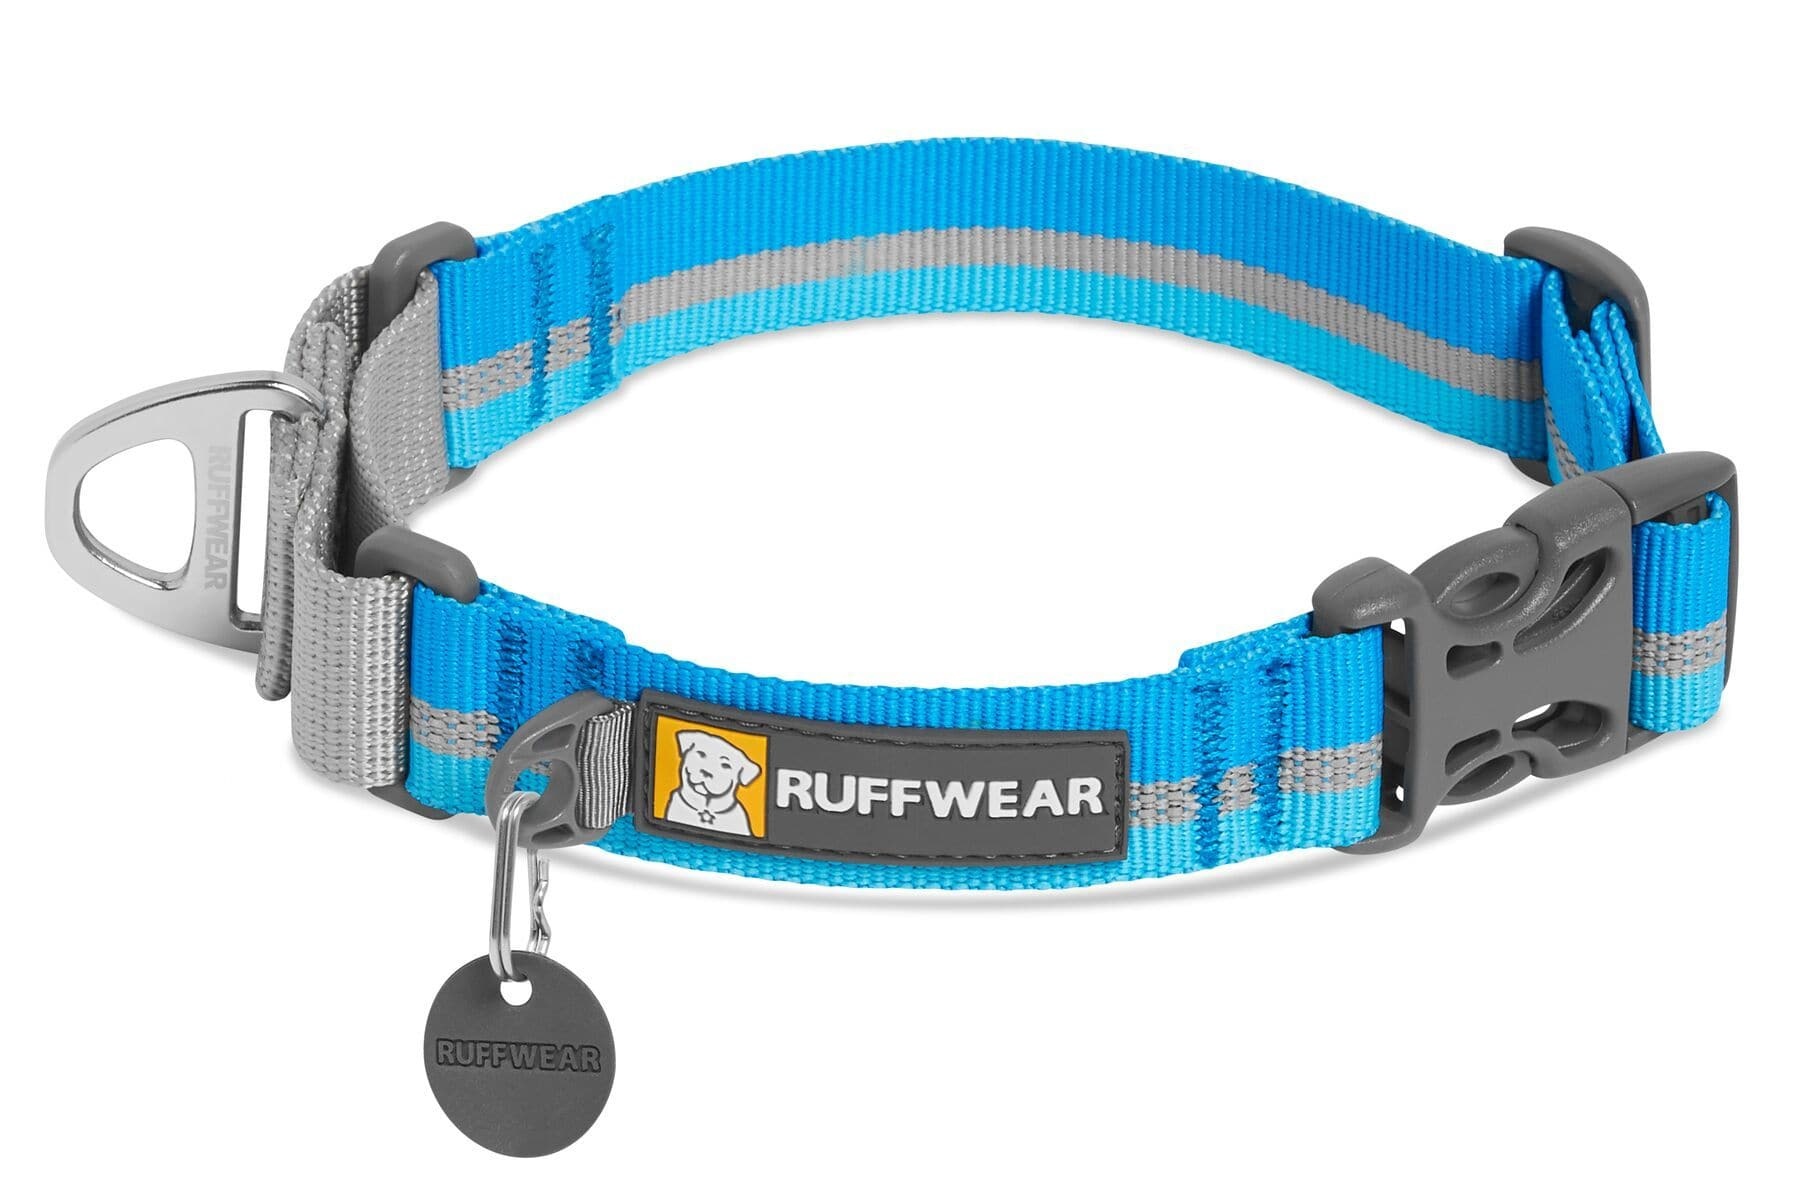 Collar para Perros Modelo WEB Reaction en Azul (Blue Dusk) - Ruffwear